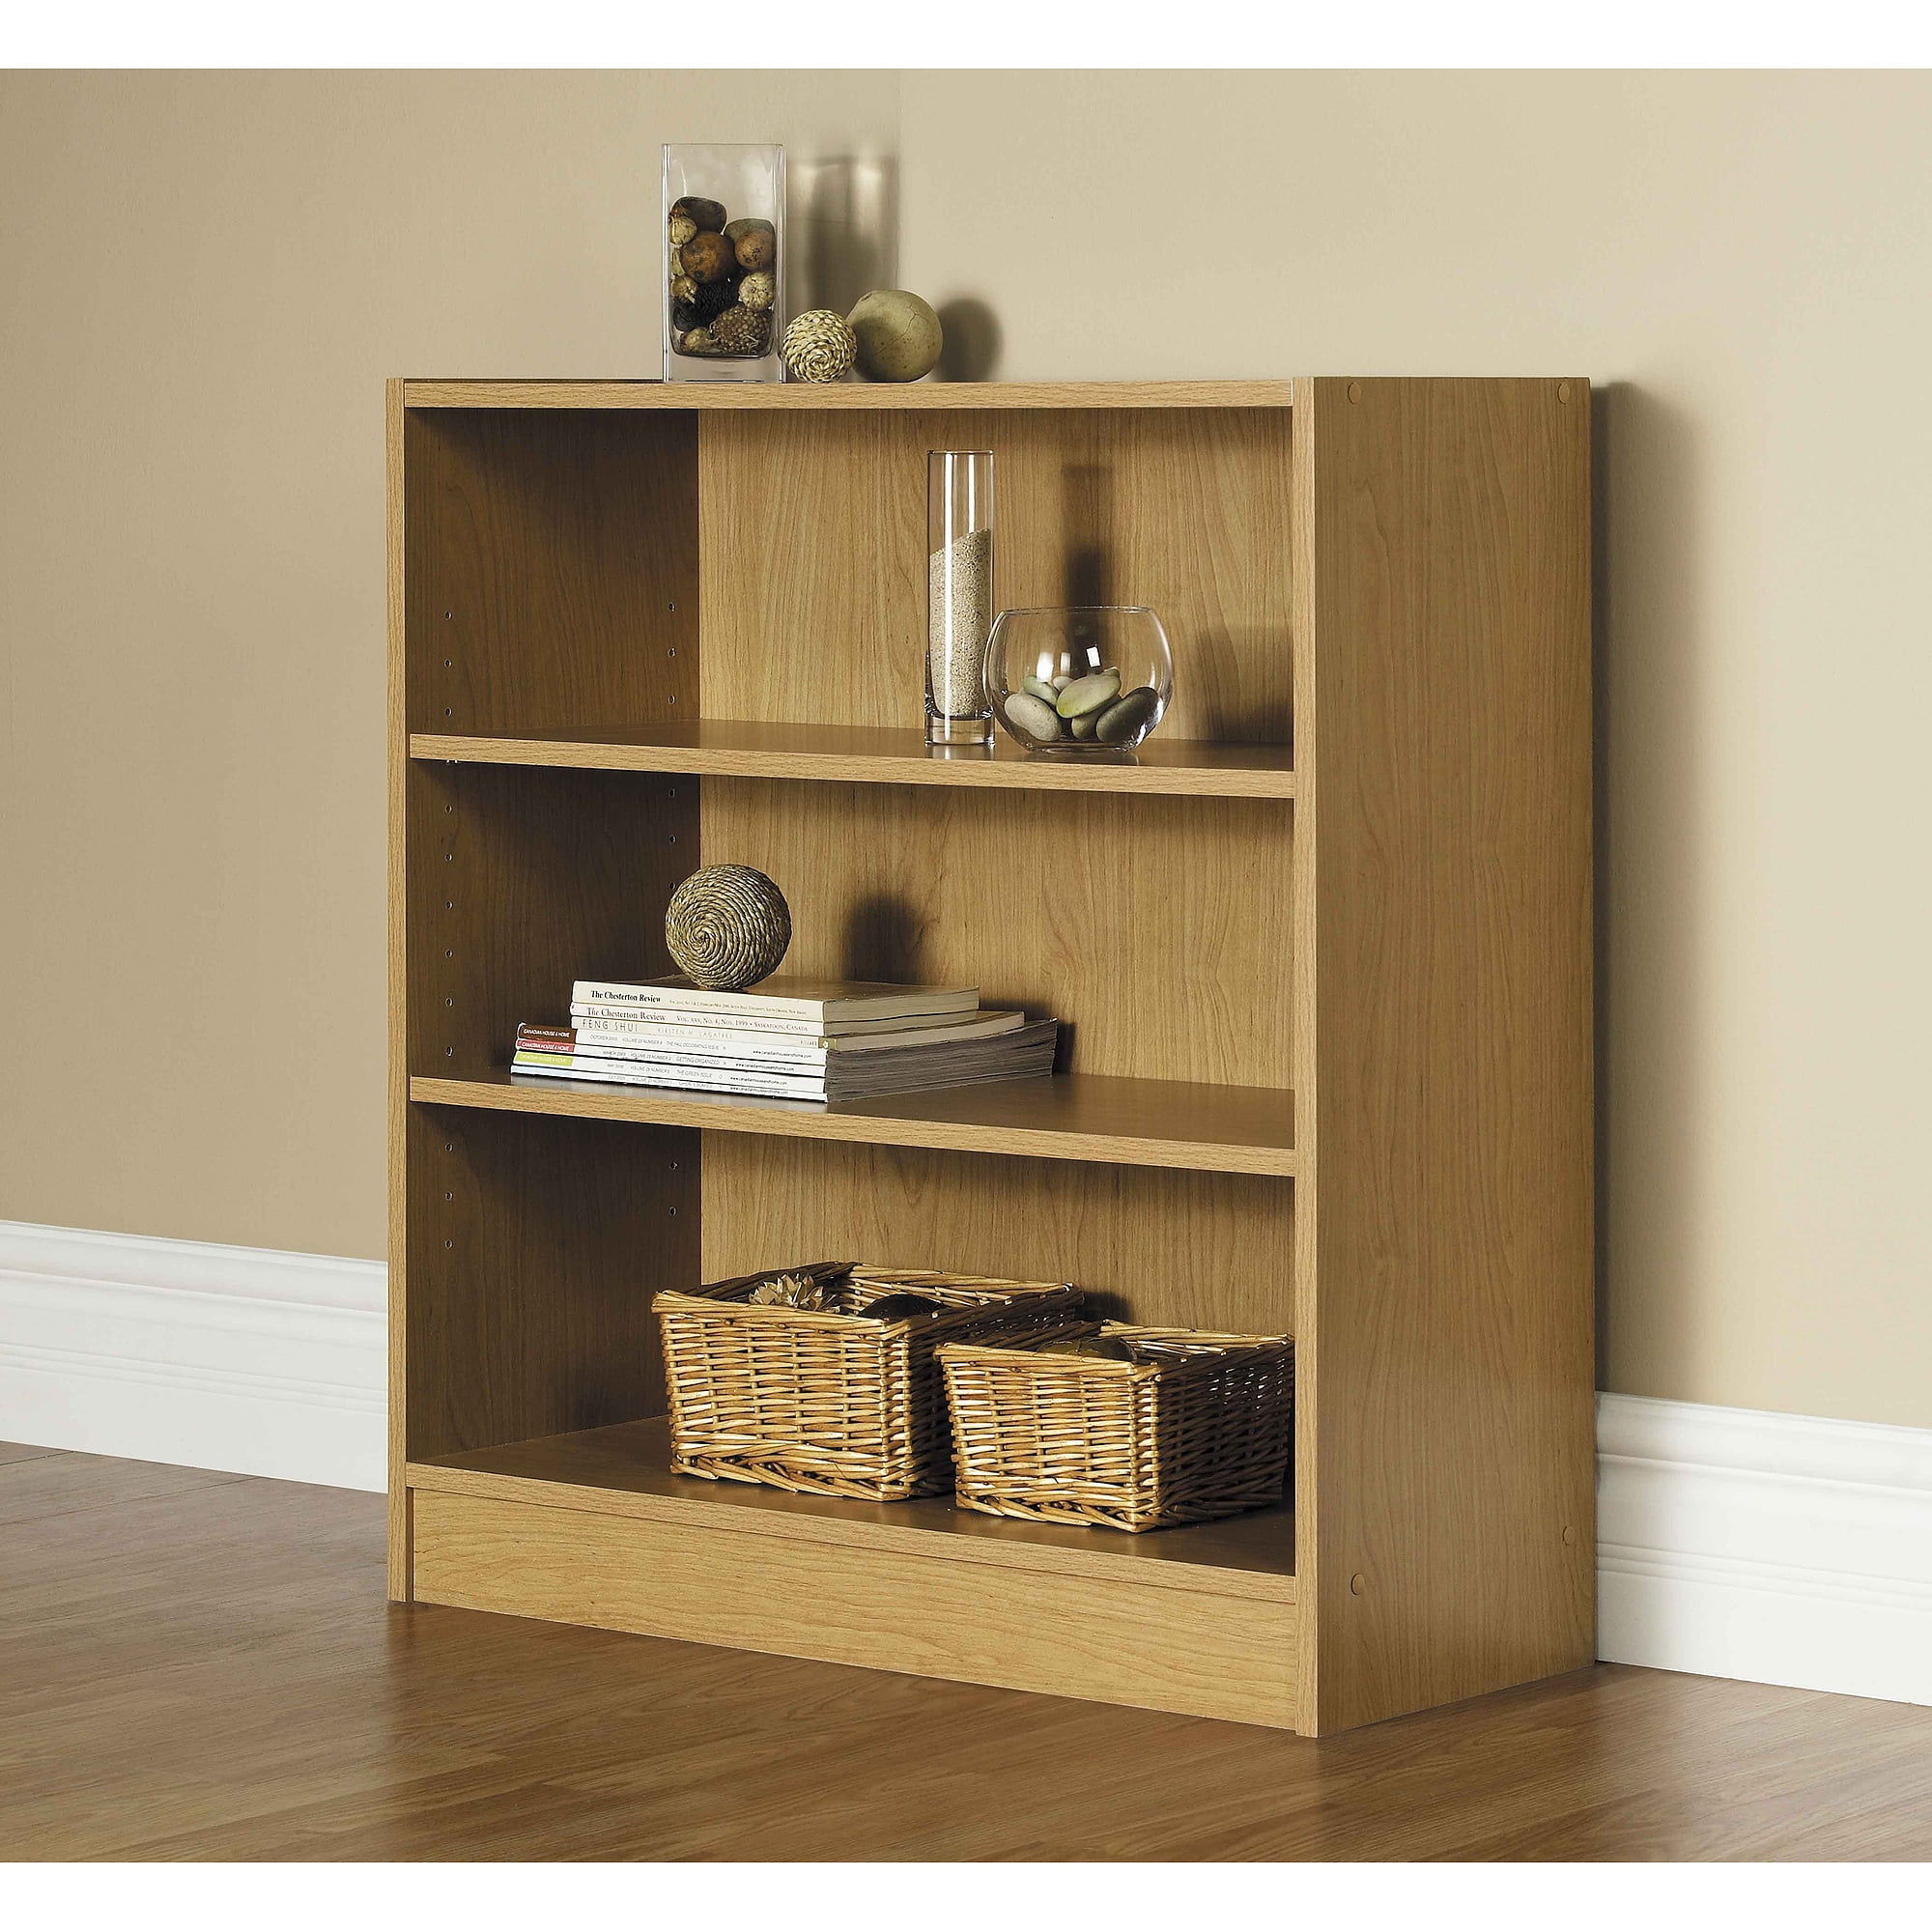 australia buy products product in online wide brosa mia front bookcase